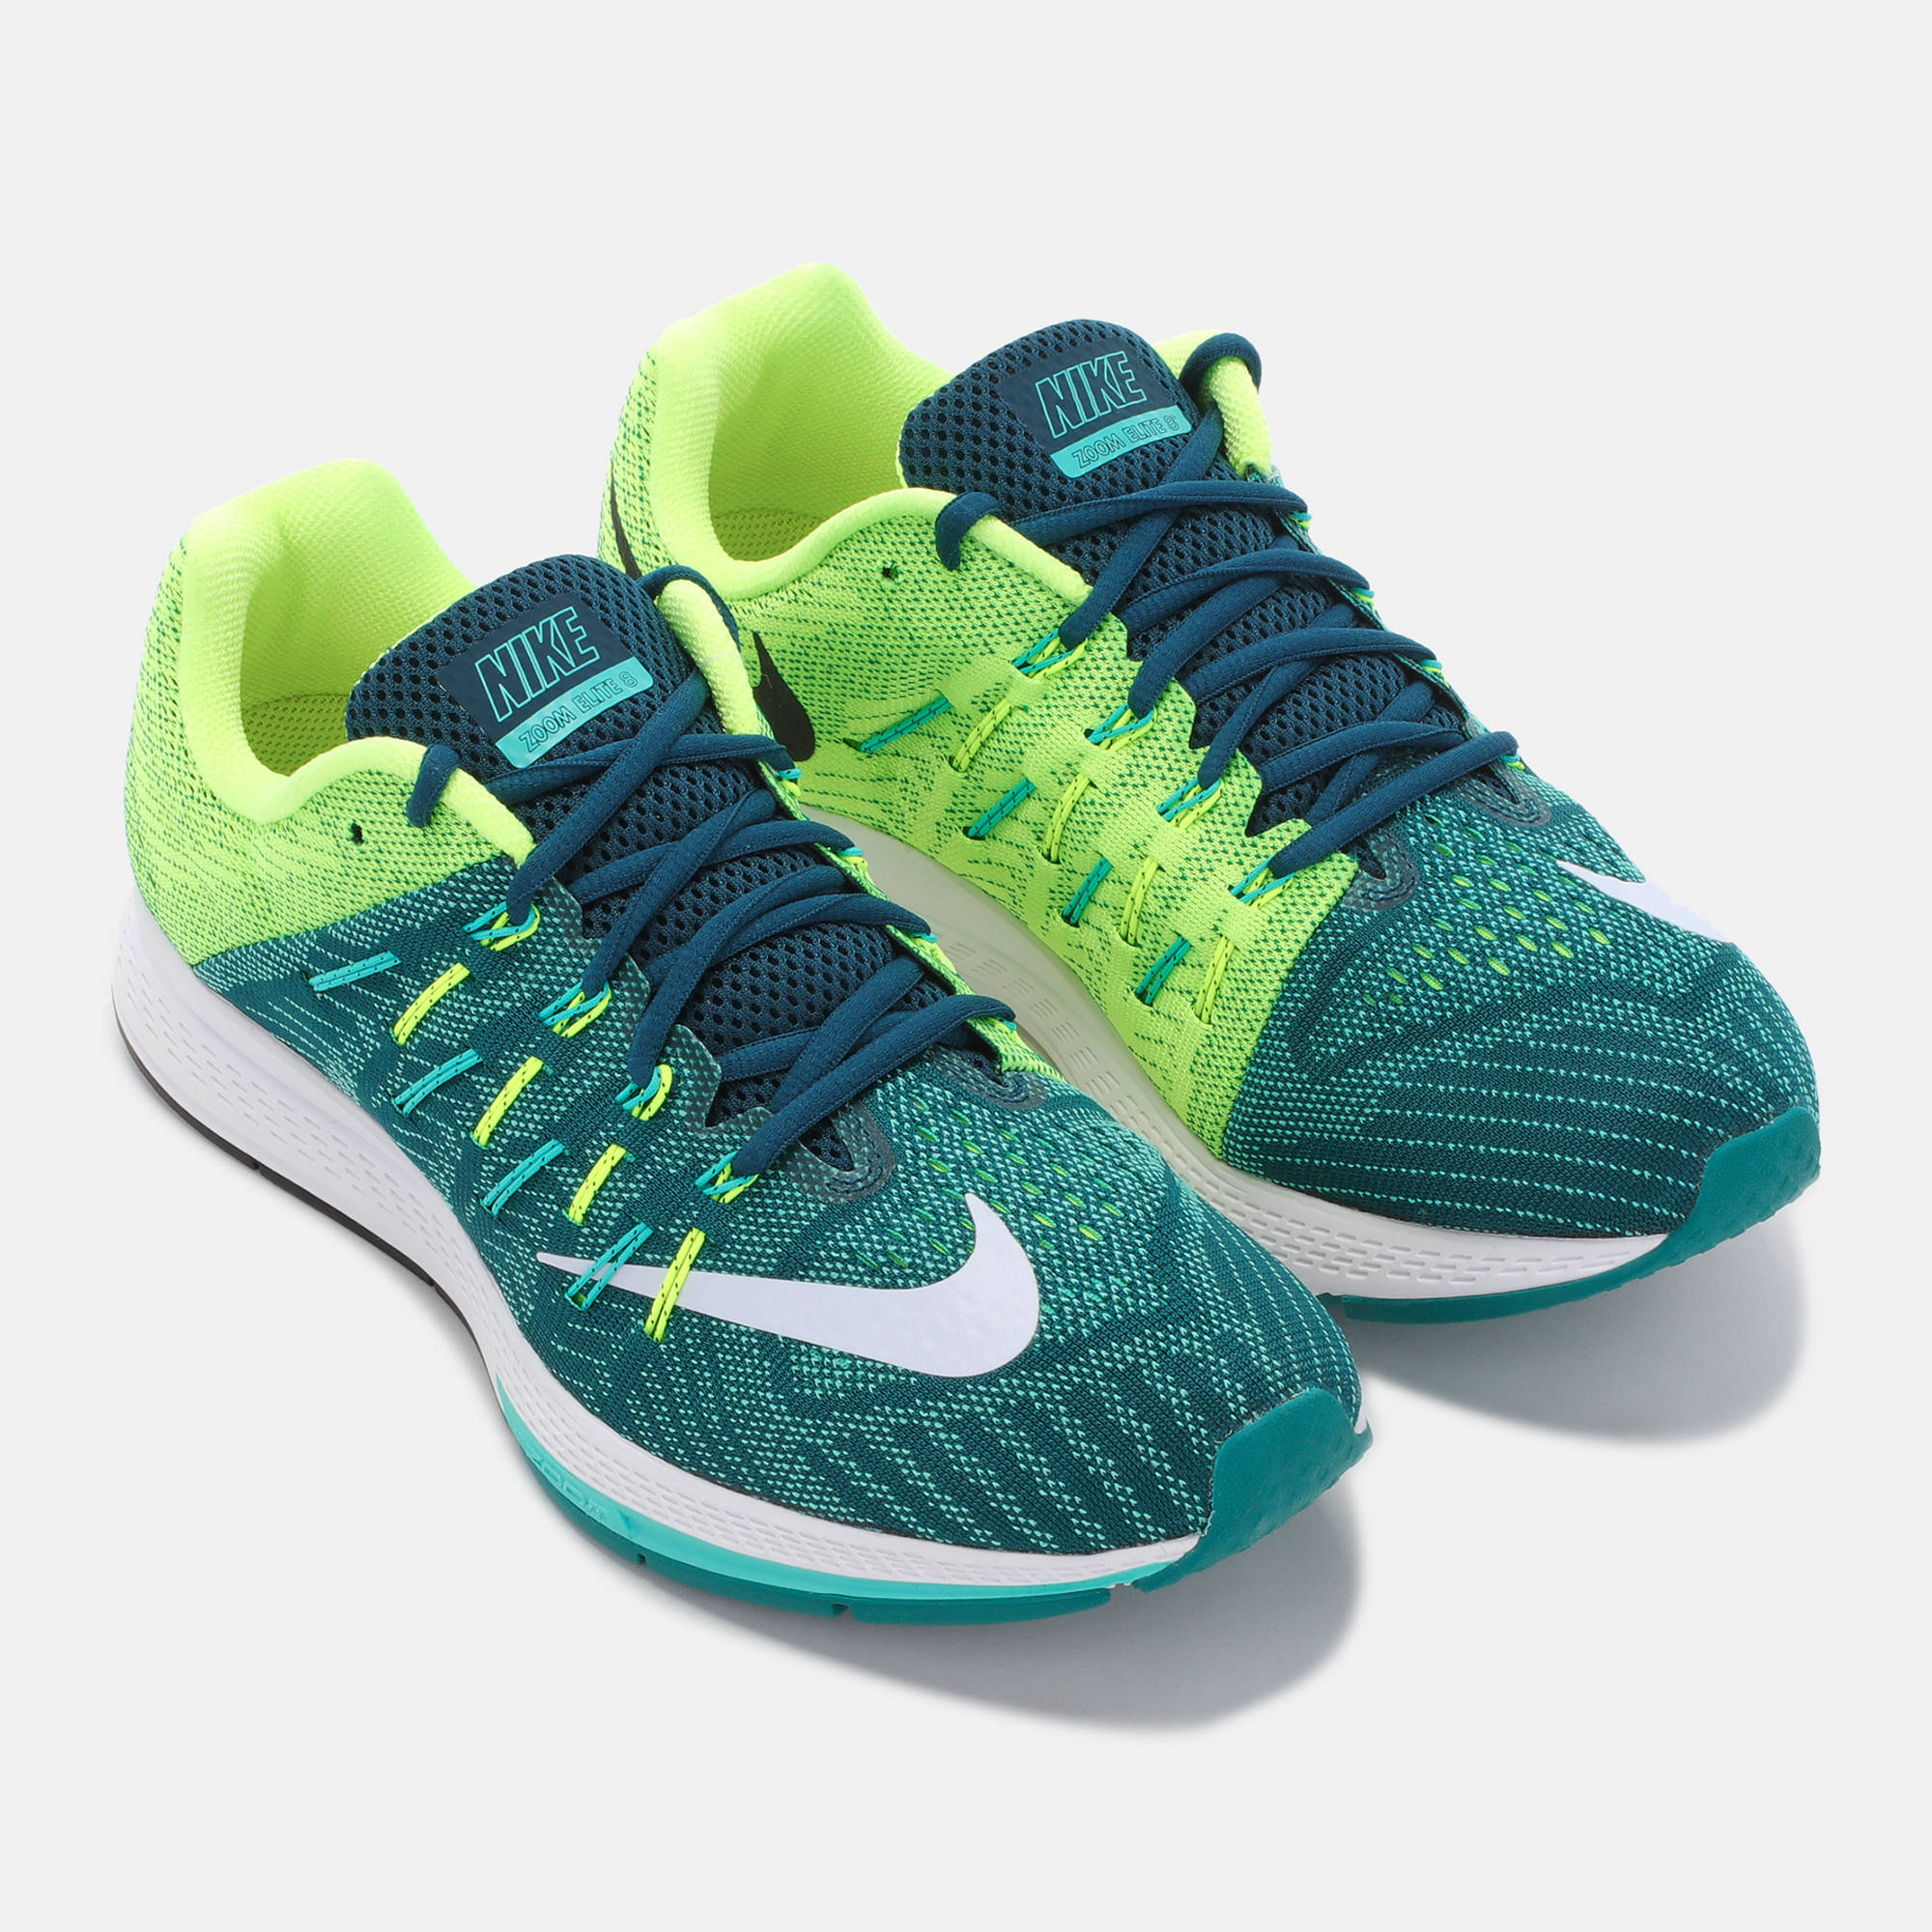 cheap for discount 2671d 6df93 Nike Air Zoom Elite 8 : Nike | Discounted Shoes & Trainers ...